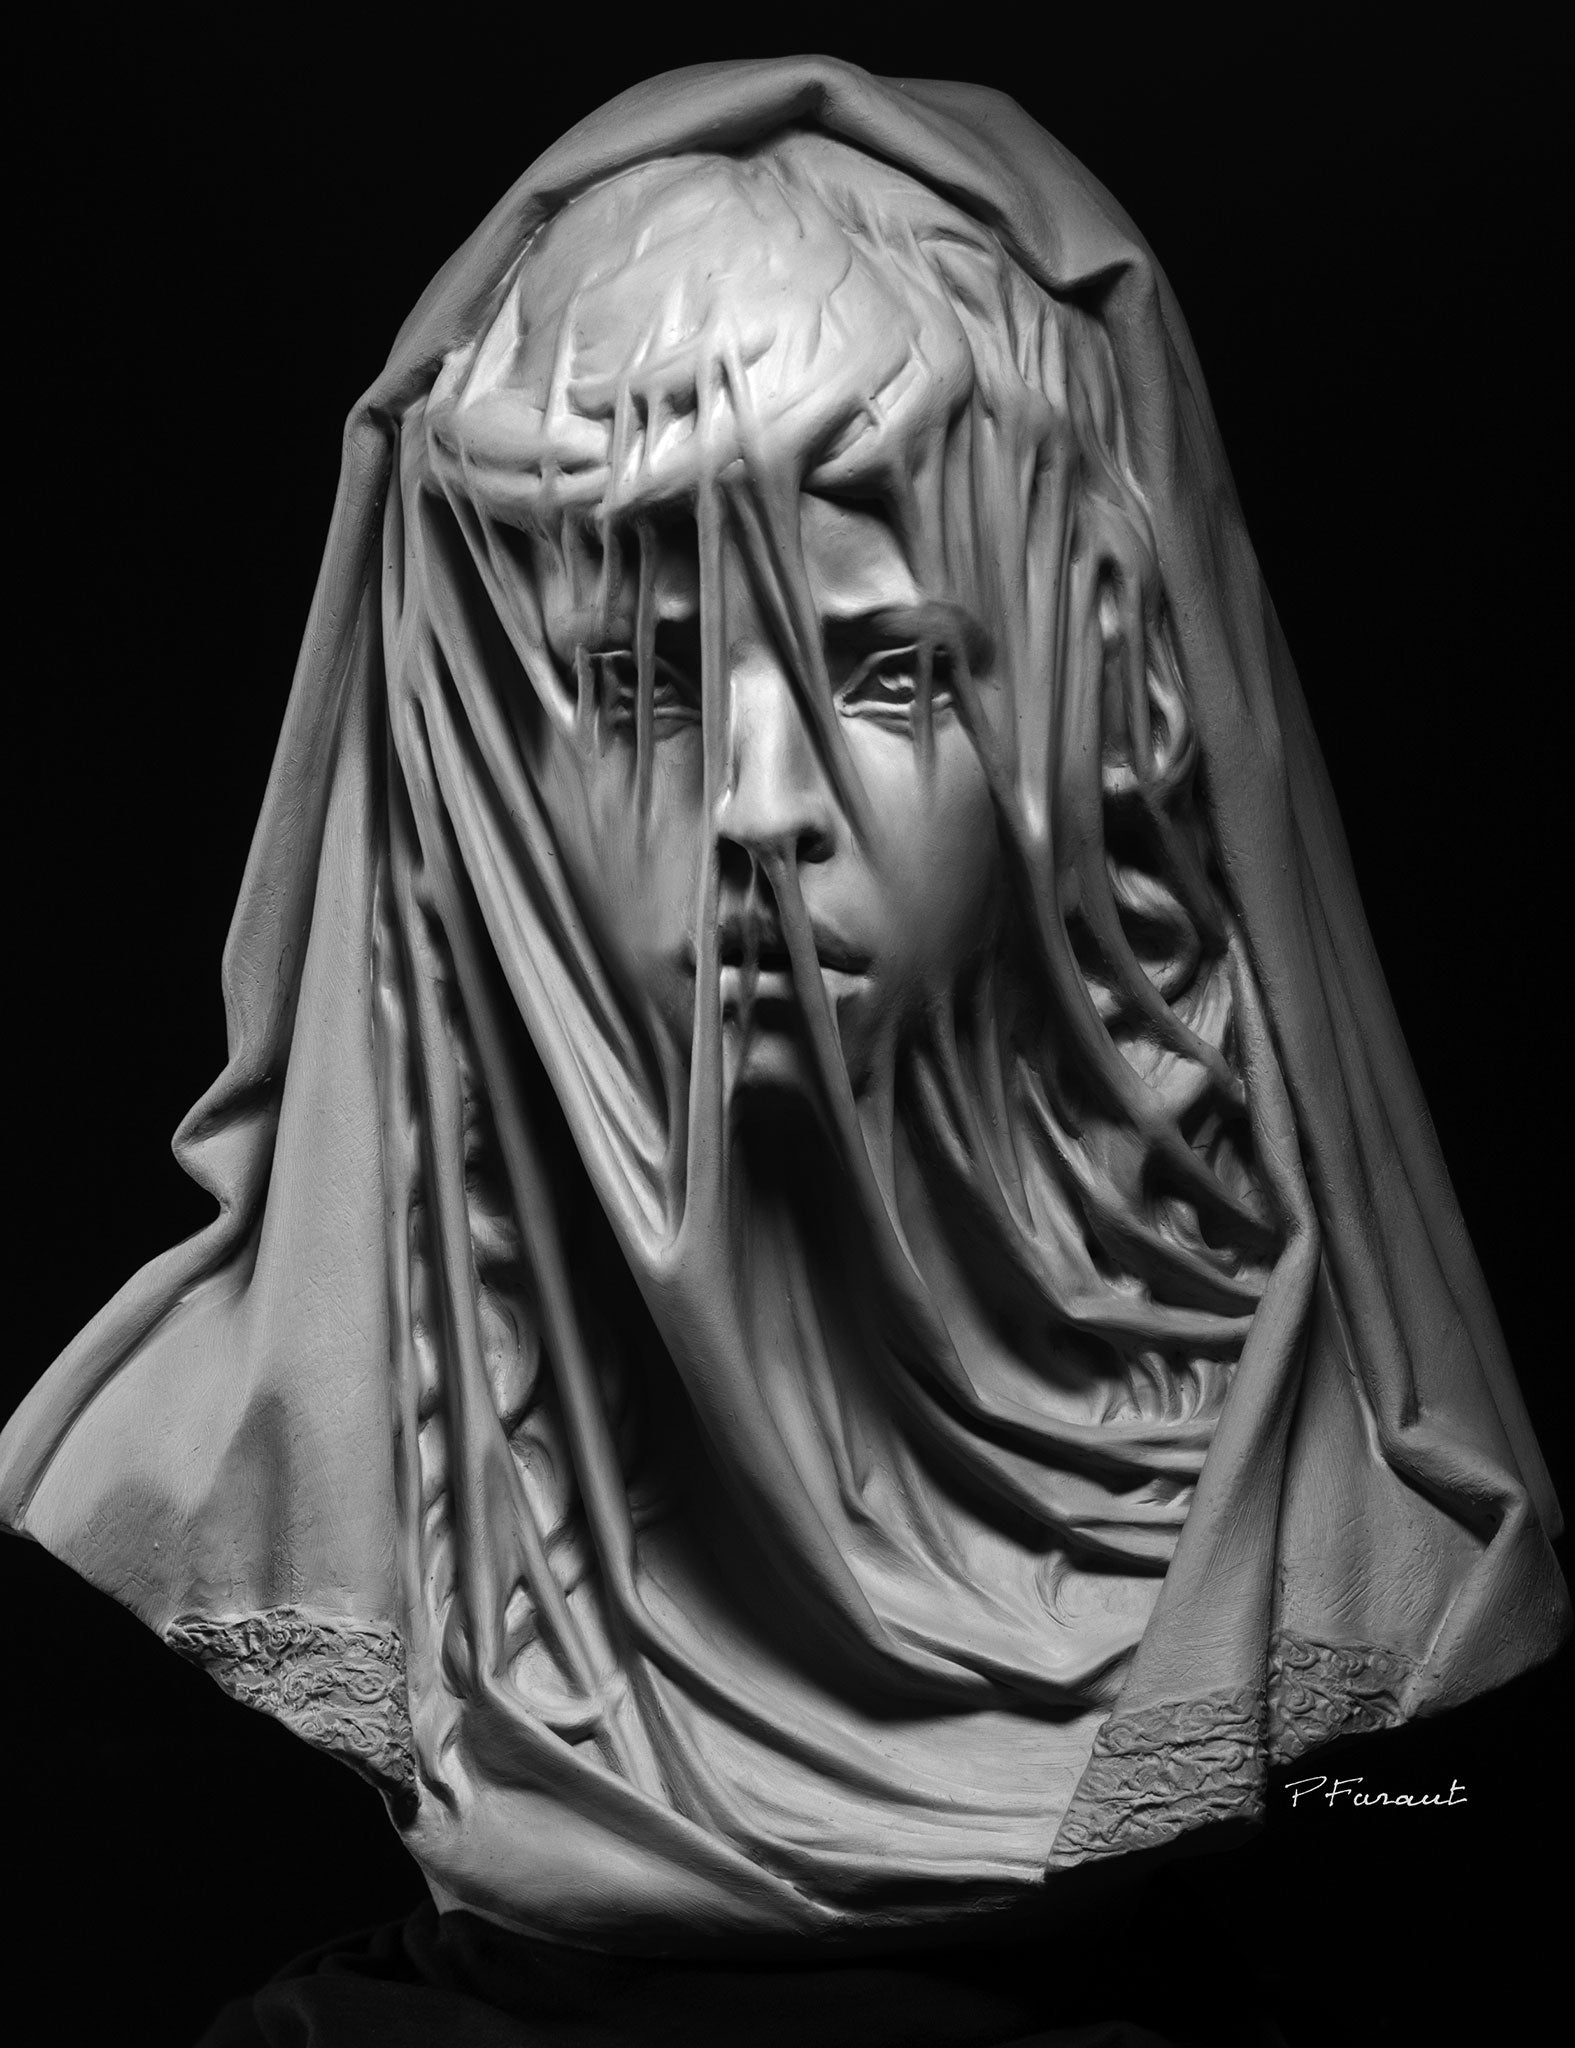 Portrait bust of a child in a shear wedding veil by Philippe Faraut